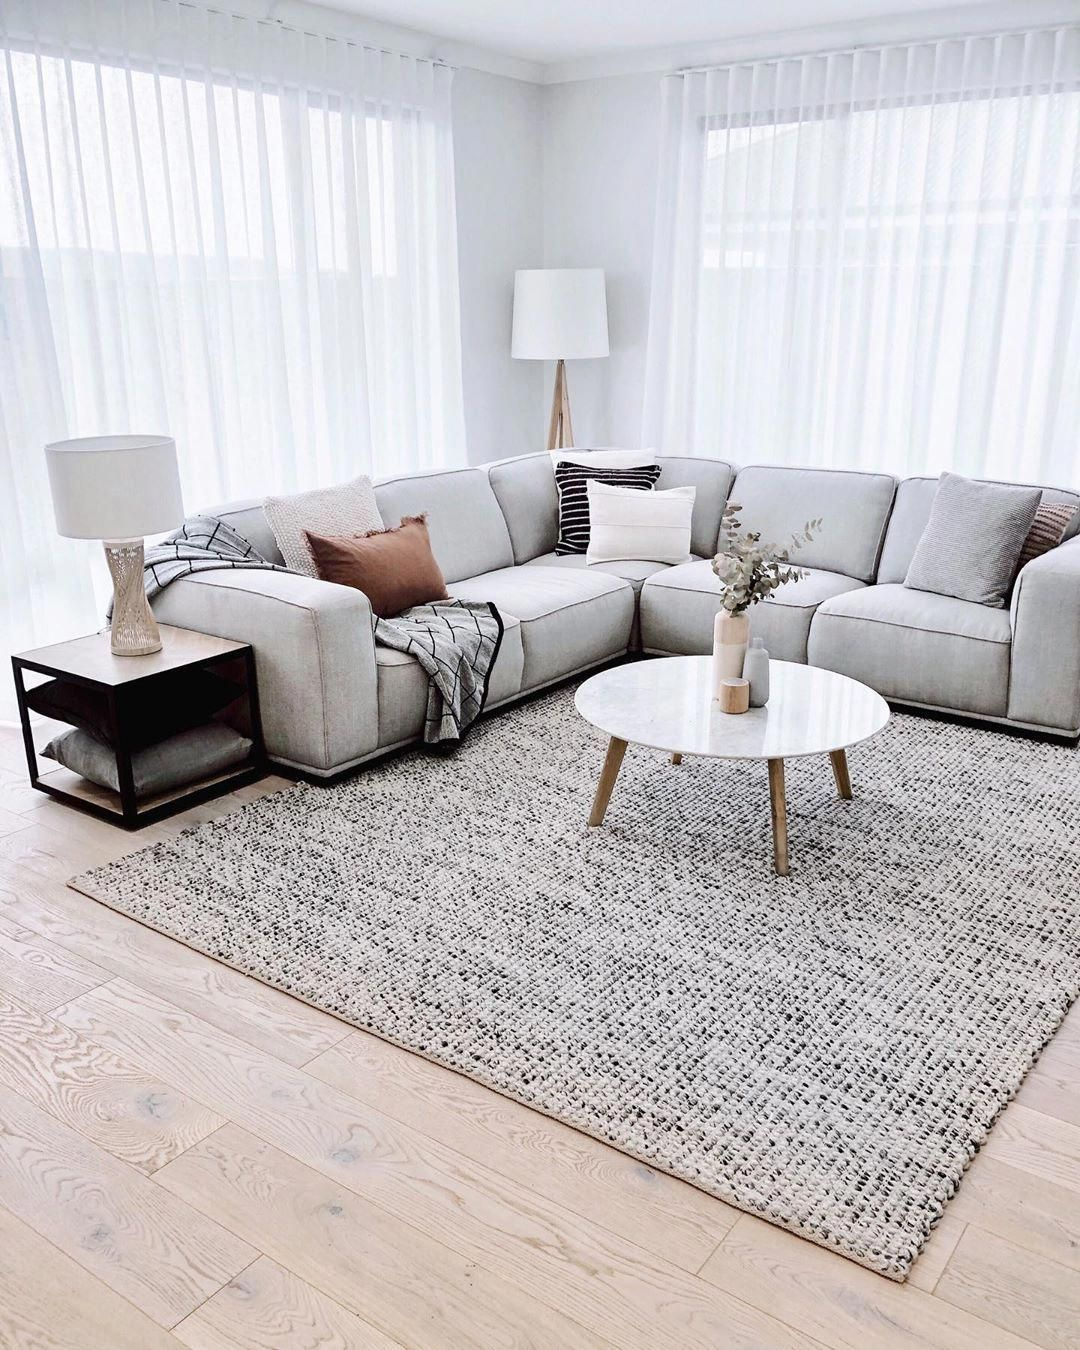 M E G C A R I S On Instagram A N D R E L A X Have A Lovely Evening Everyone Xo Living Room Sofa Design Minimalist Living Room Gray Living Room Design #simple #living #room #designs #ideas